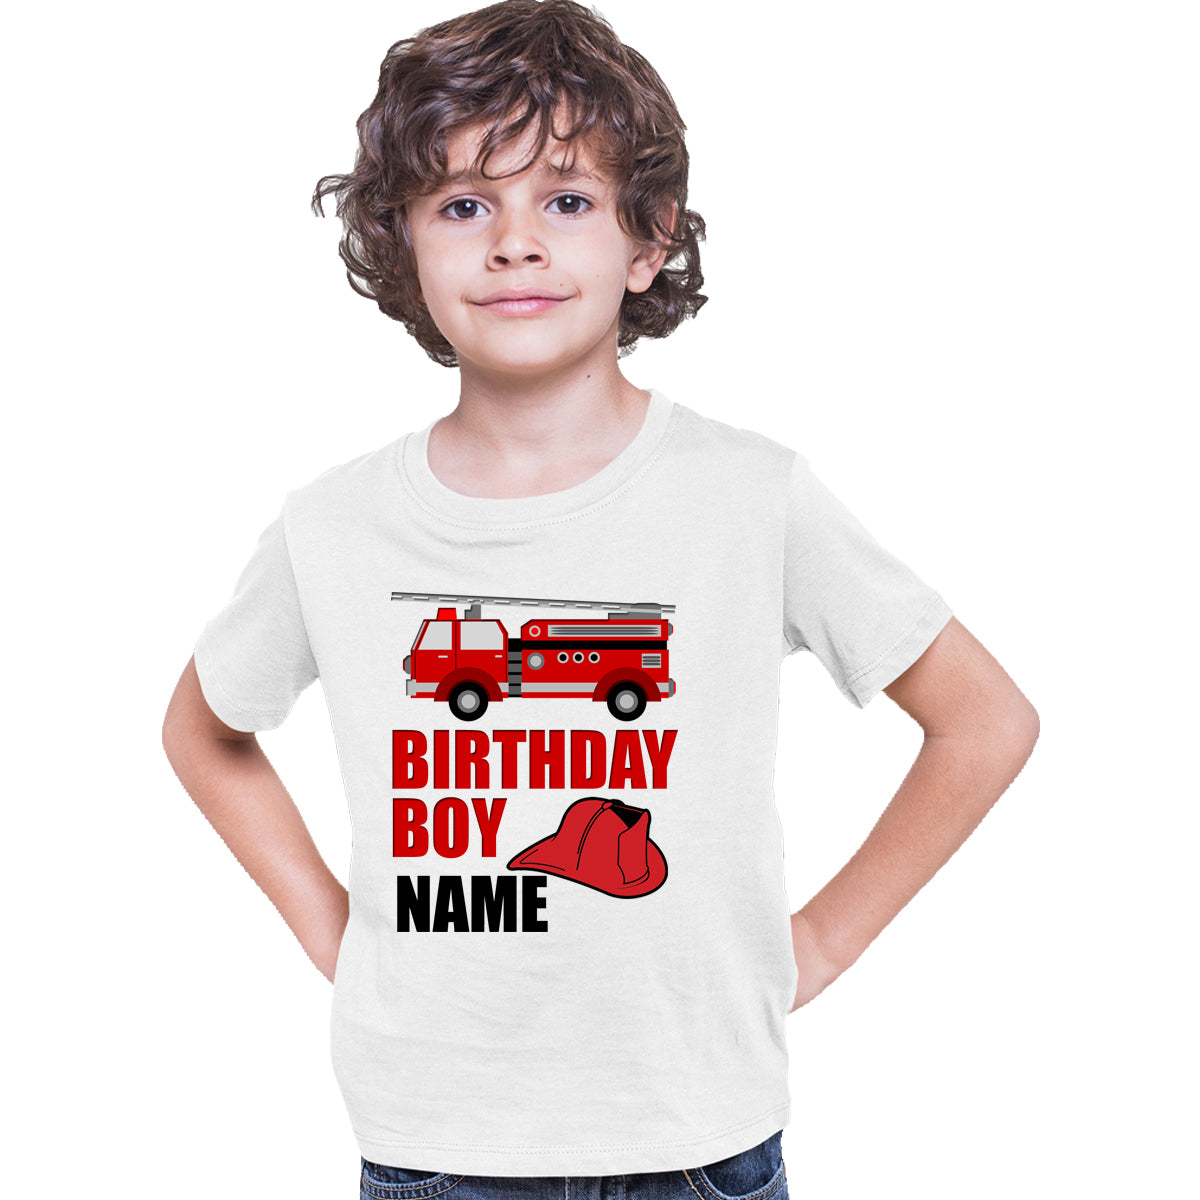 Sprinklecart Customized Fire Vehicle Poly-Cotton Birthday Boy T Shirt for Kids (White)